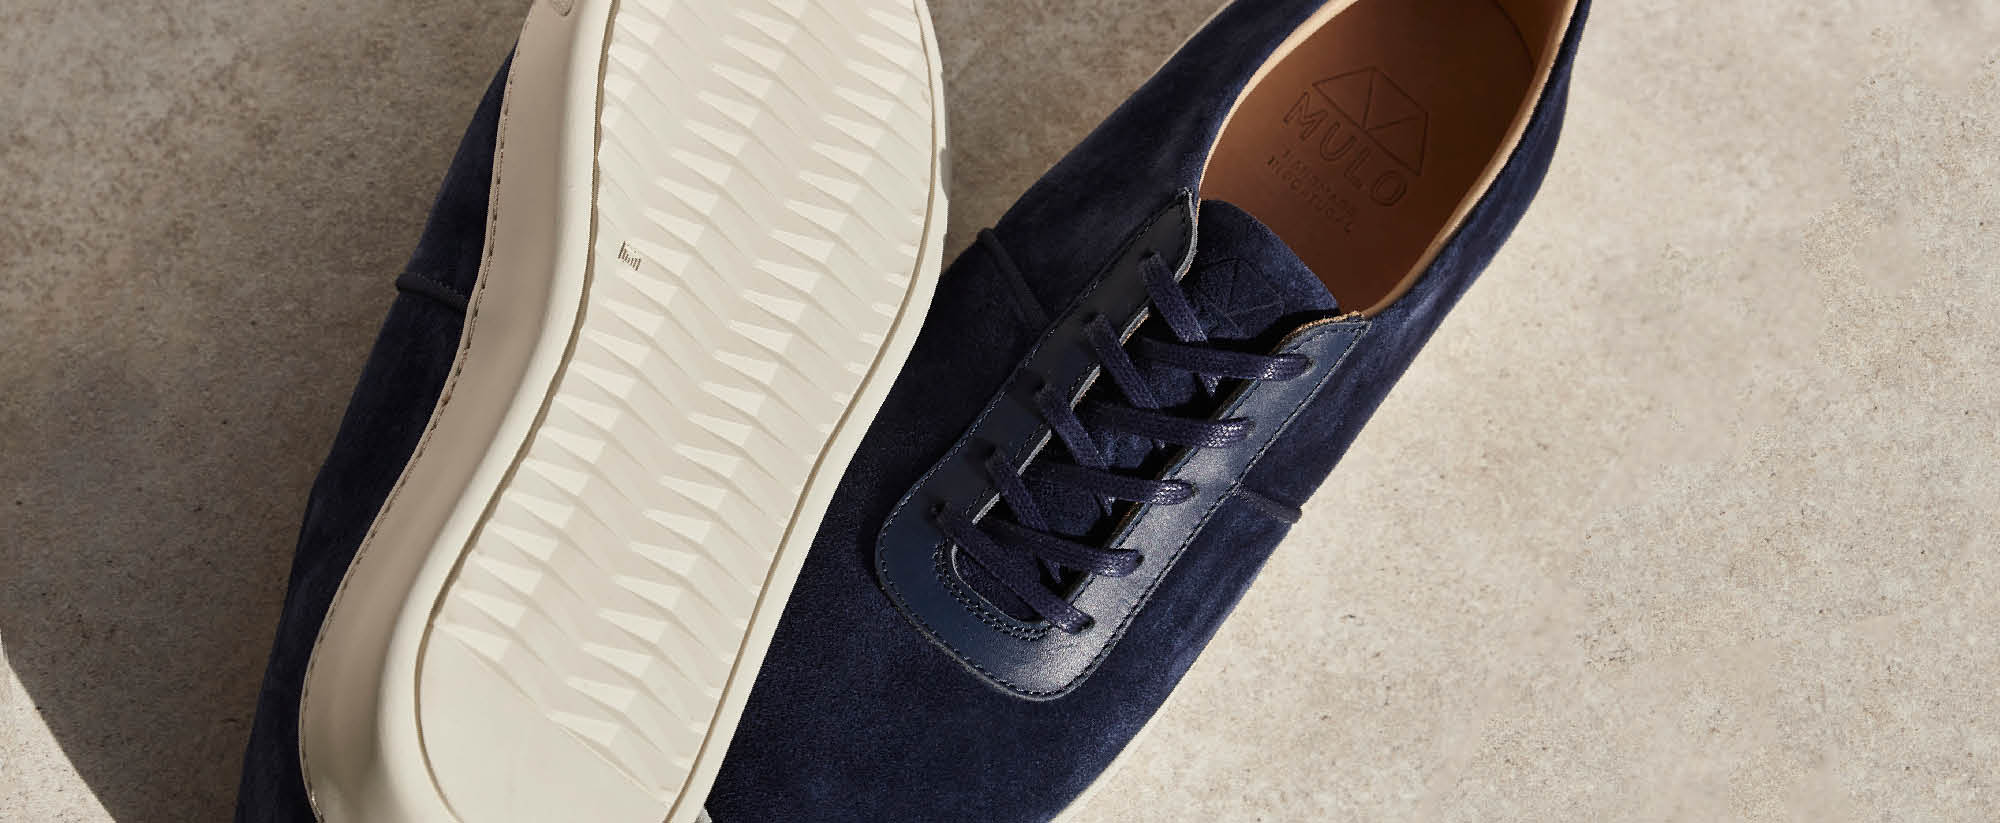 Mens Lace-Up Espadrilles in Suede